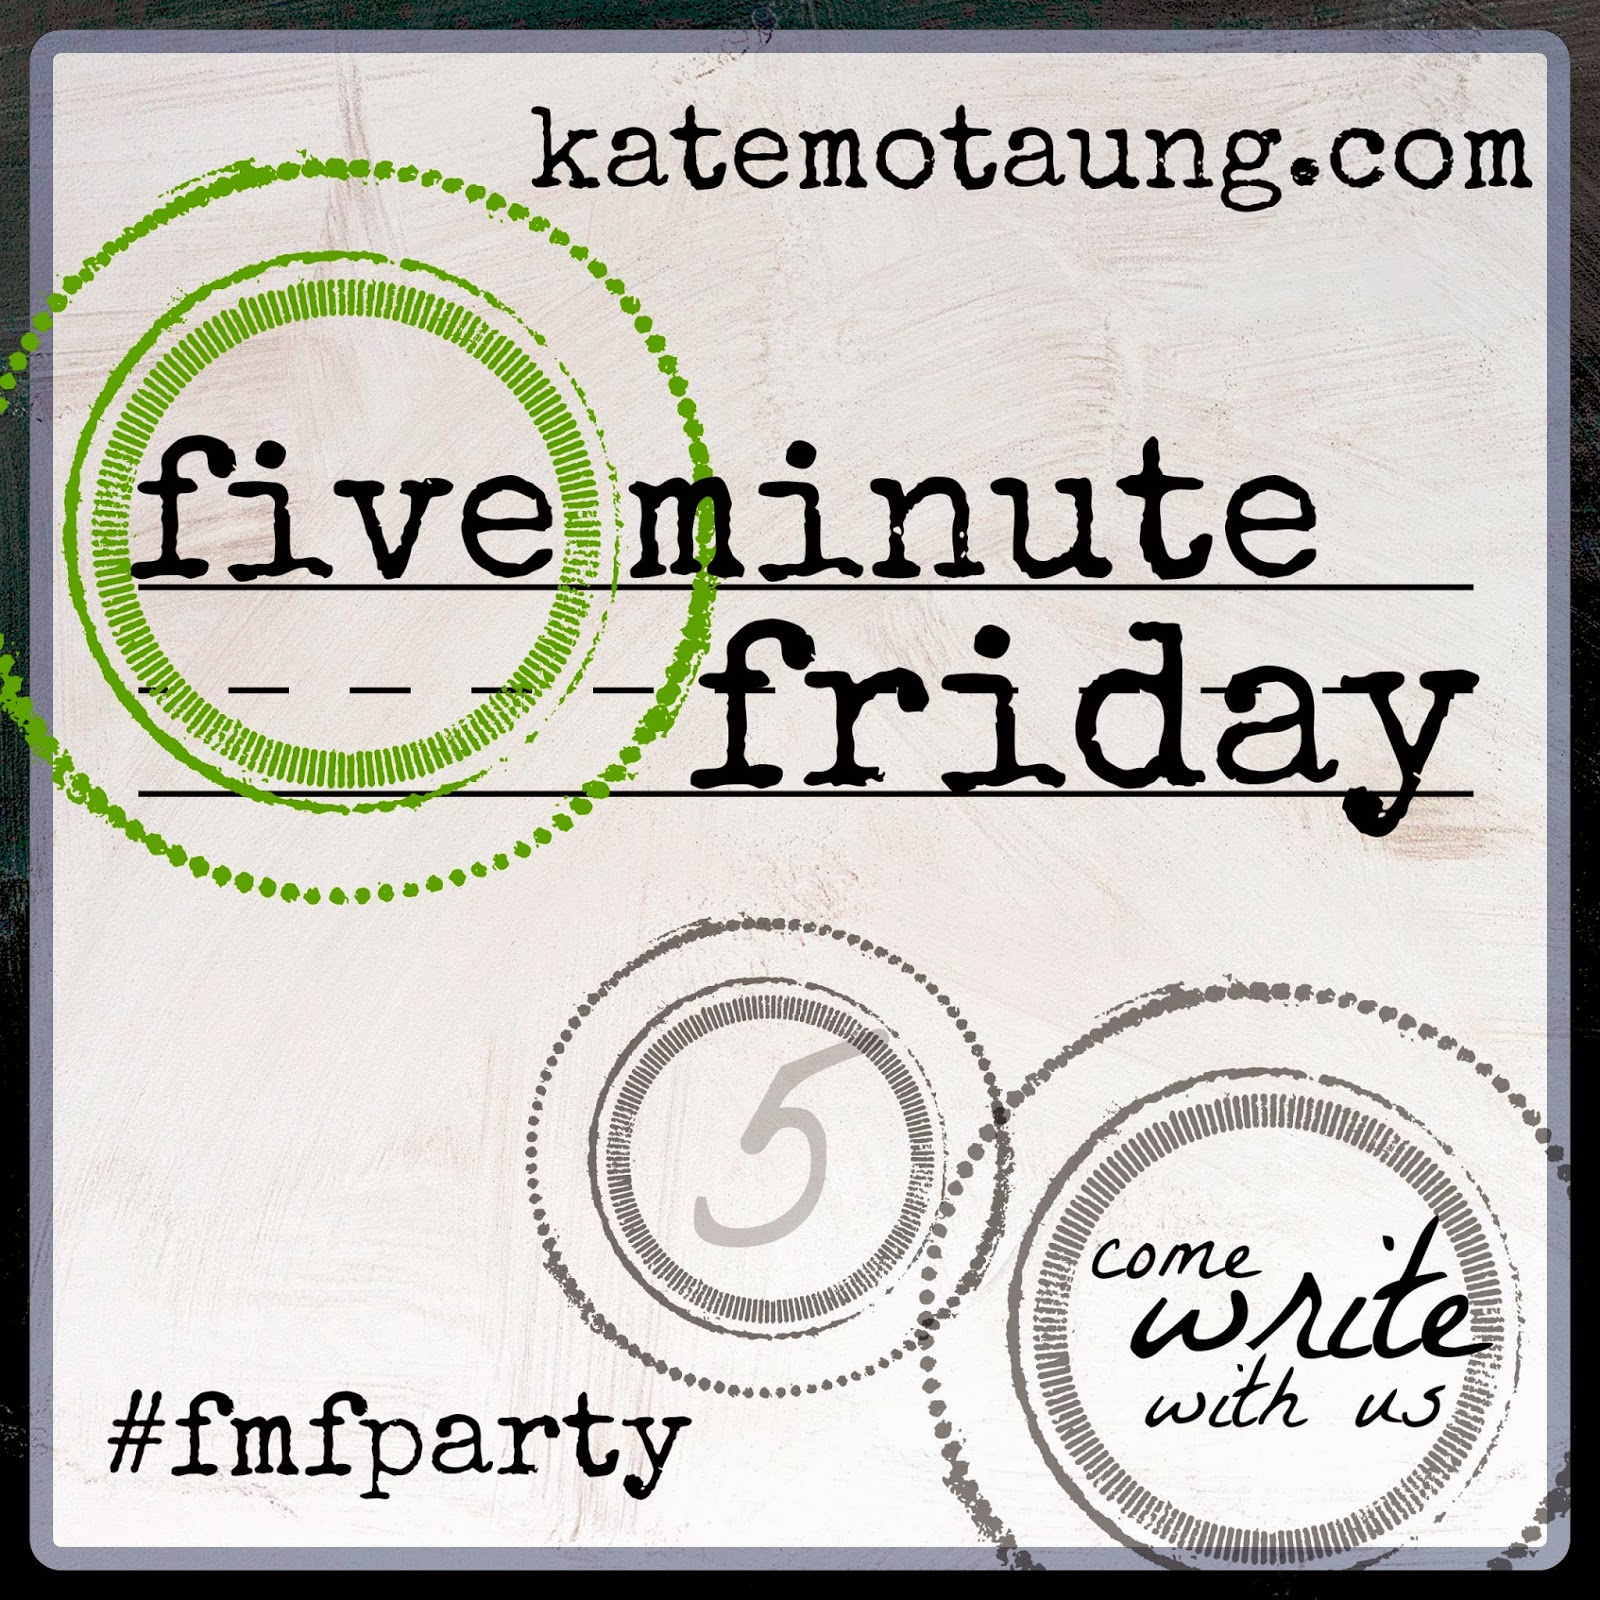 http://katemotaung.com/2014/09/04/five-minute-friday-whisper/